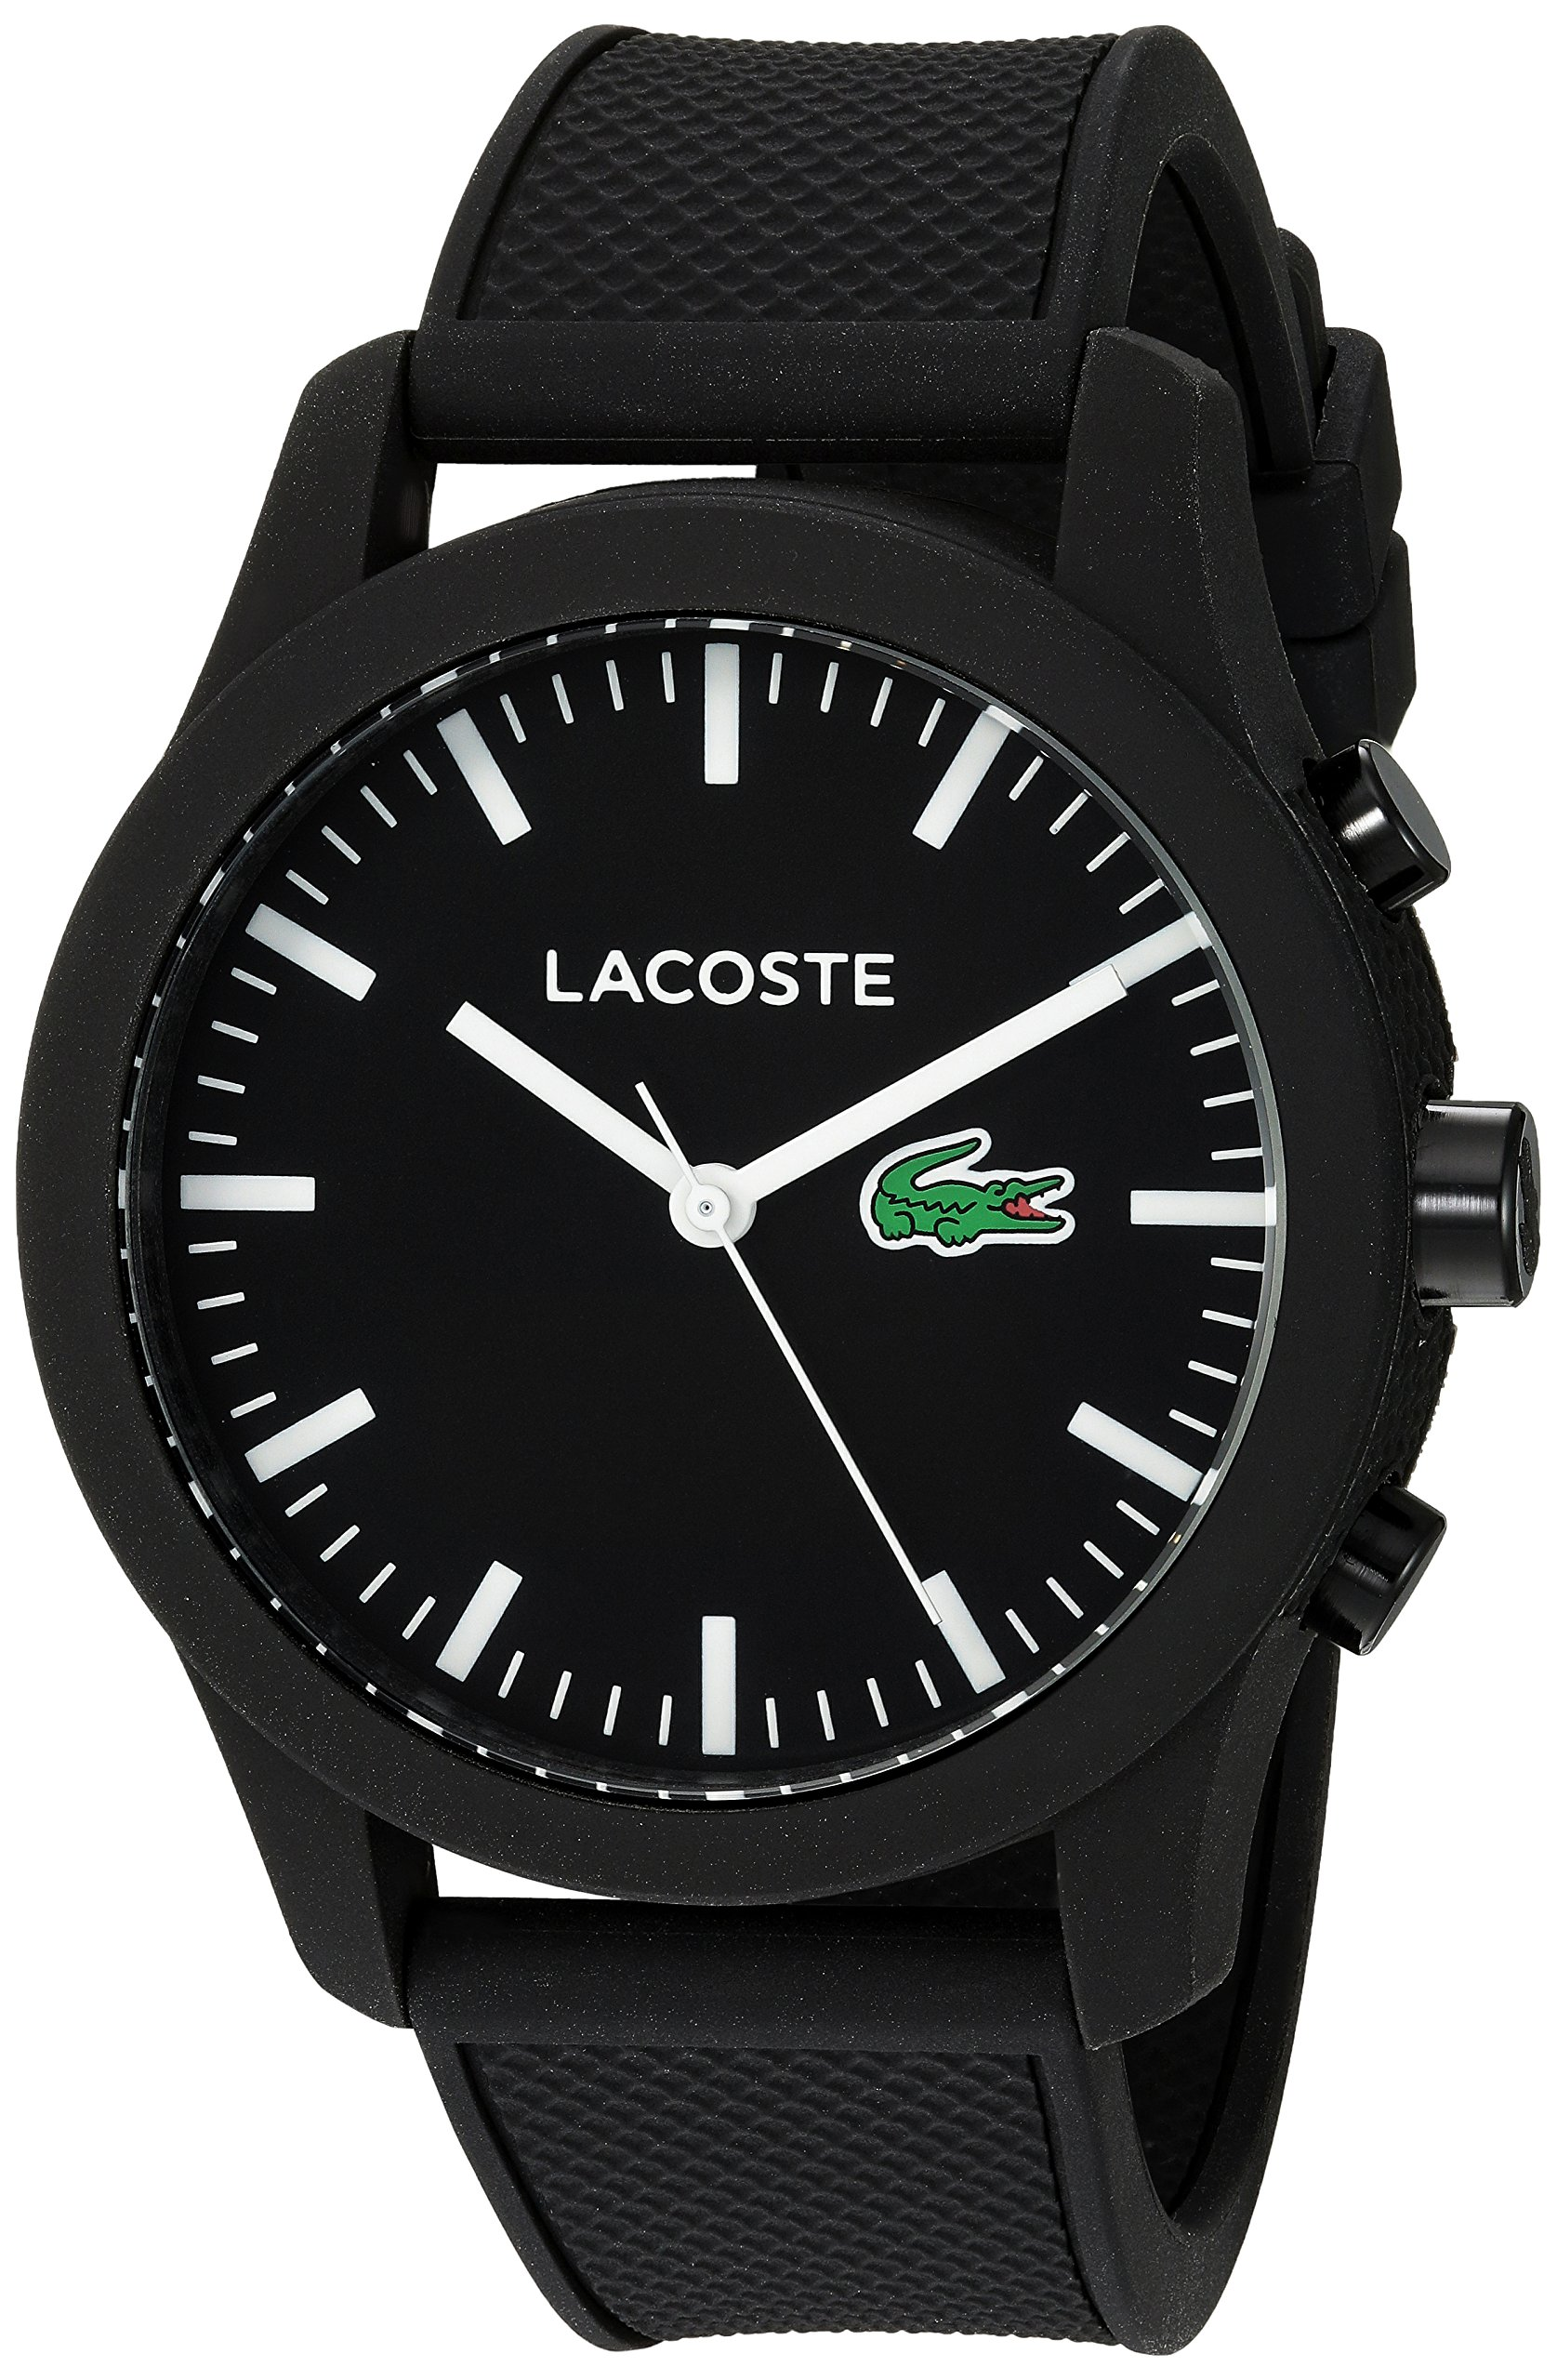 Lacoste Men's '12.12-TECH' Quartz Plastic and Rubber Smart Watch, Color:Black (Model: 2010881) by Lacoste